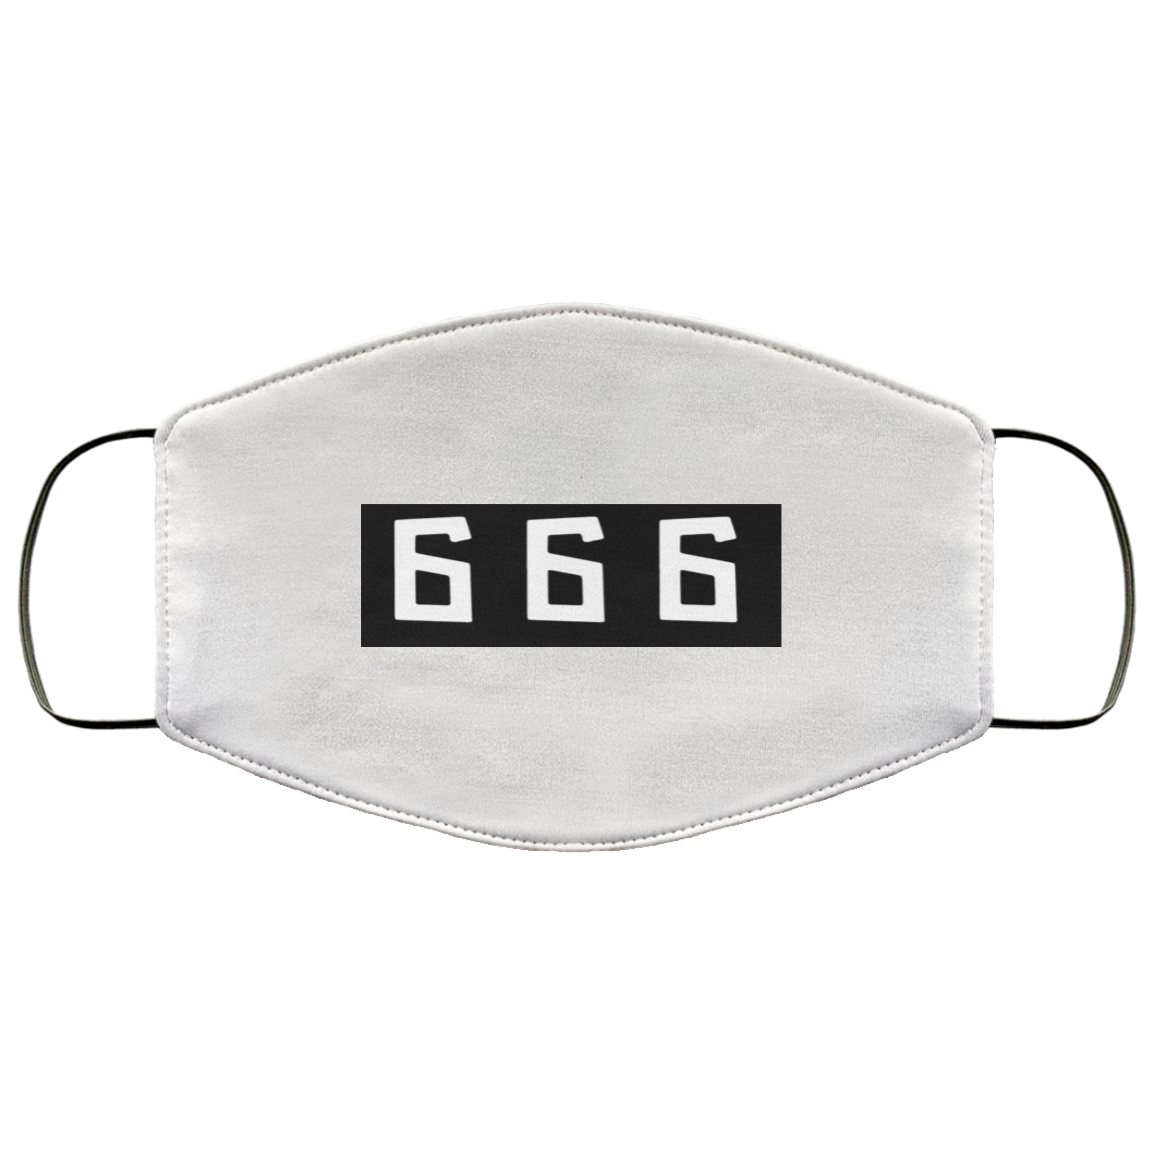 666, Mark of the Beast, FMA Face Mask,   #MASKofTheBEAST